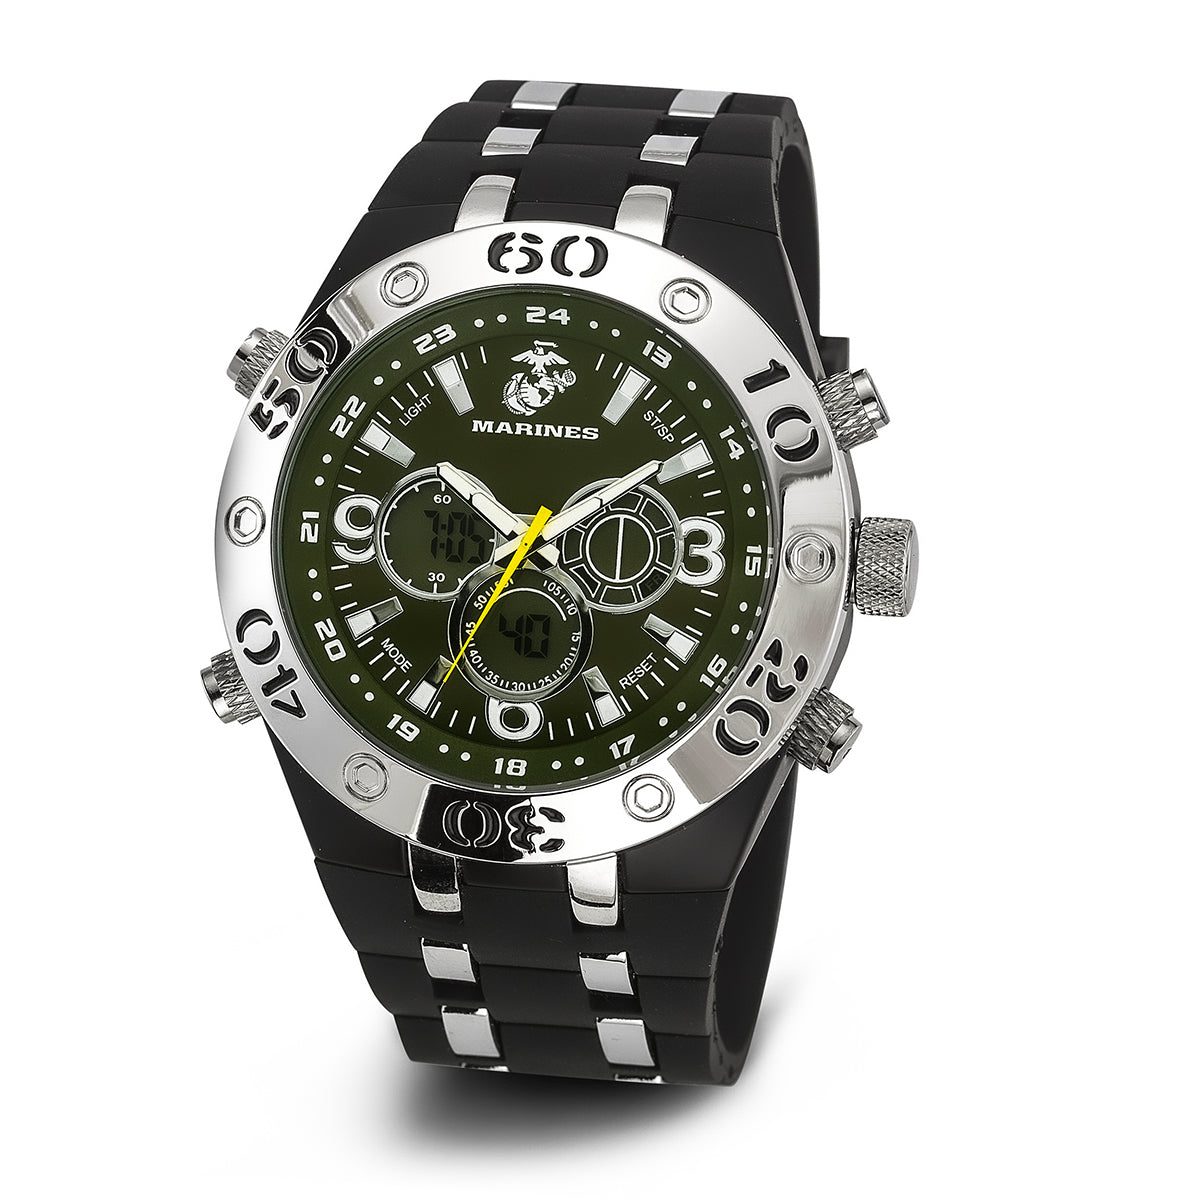 U.S. Marine Corps C23 | Analog-Digital Display Quartz Multi-function Watch